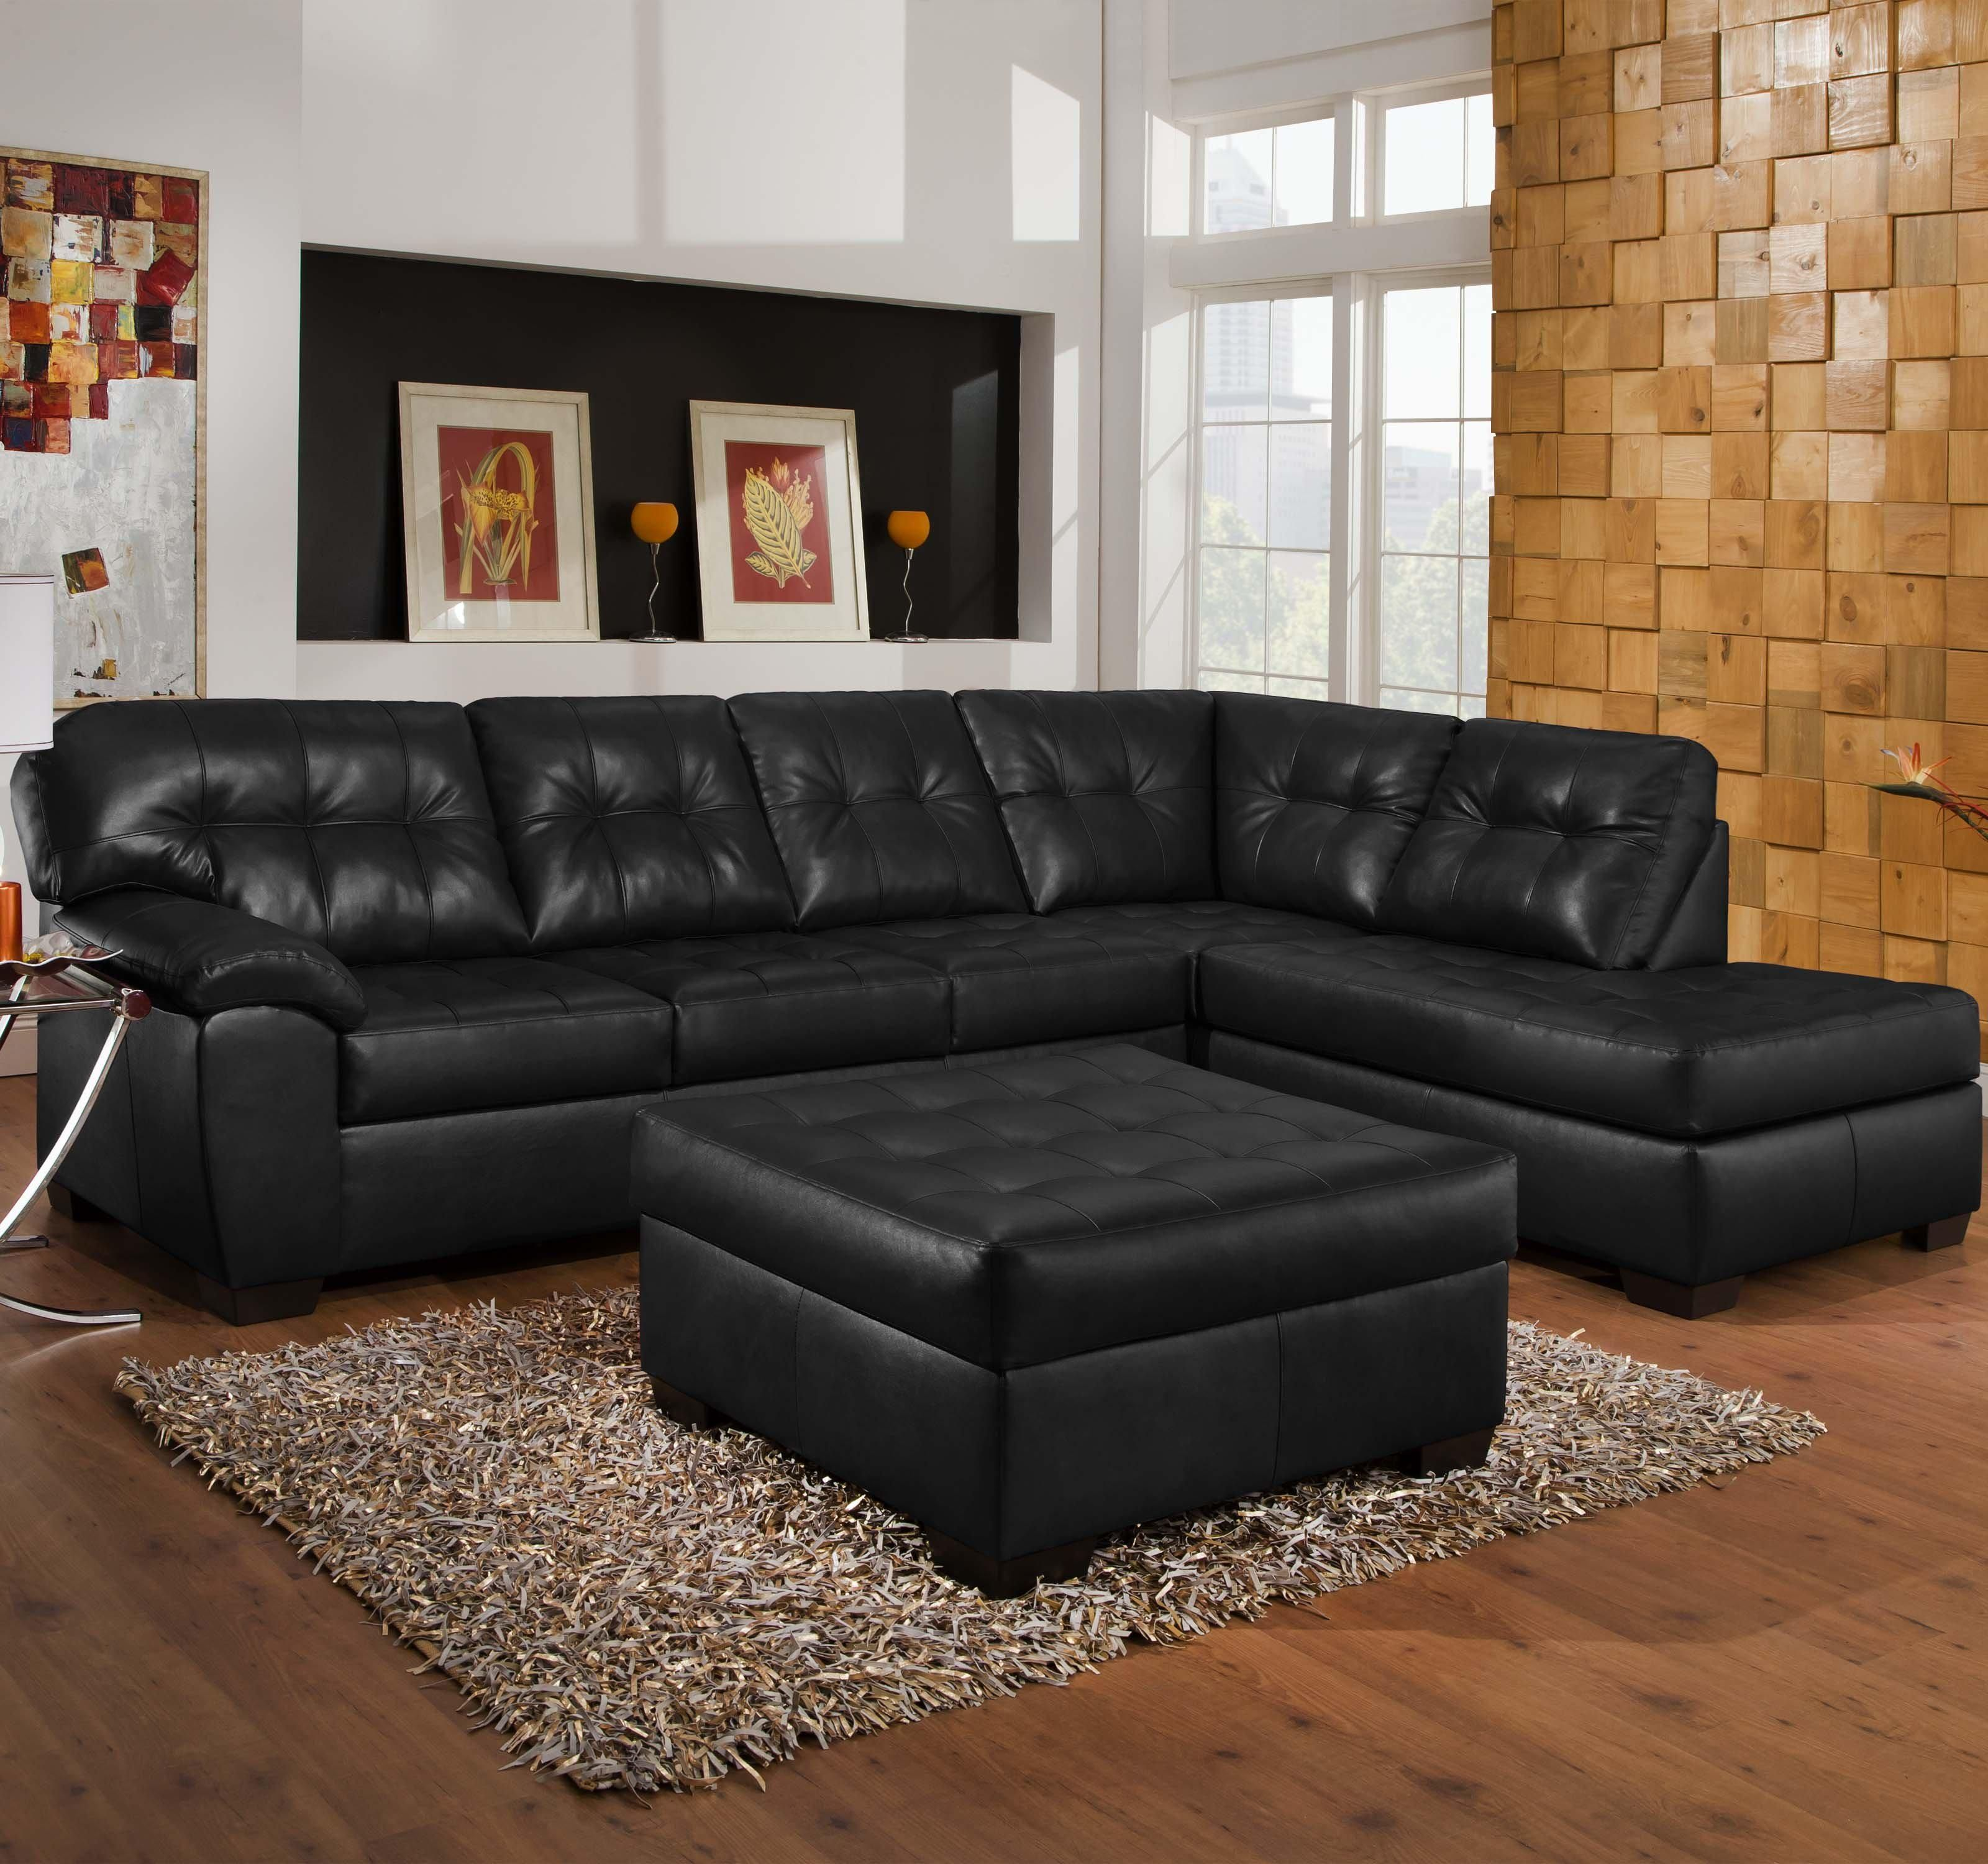 9569 2 Piece Sectional With Tufted Seats Back By United Furniture Industries Knoxville Red Sectional Sofa Couches Living Room Sectional Couches Living Room